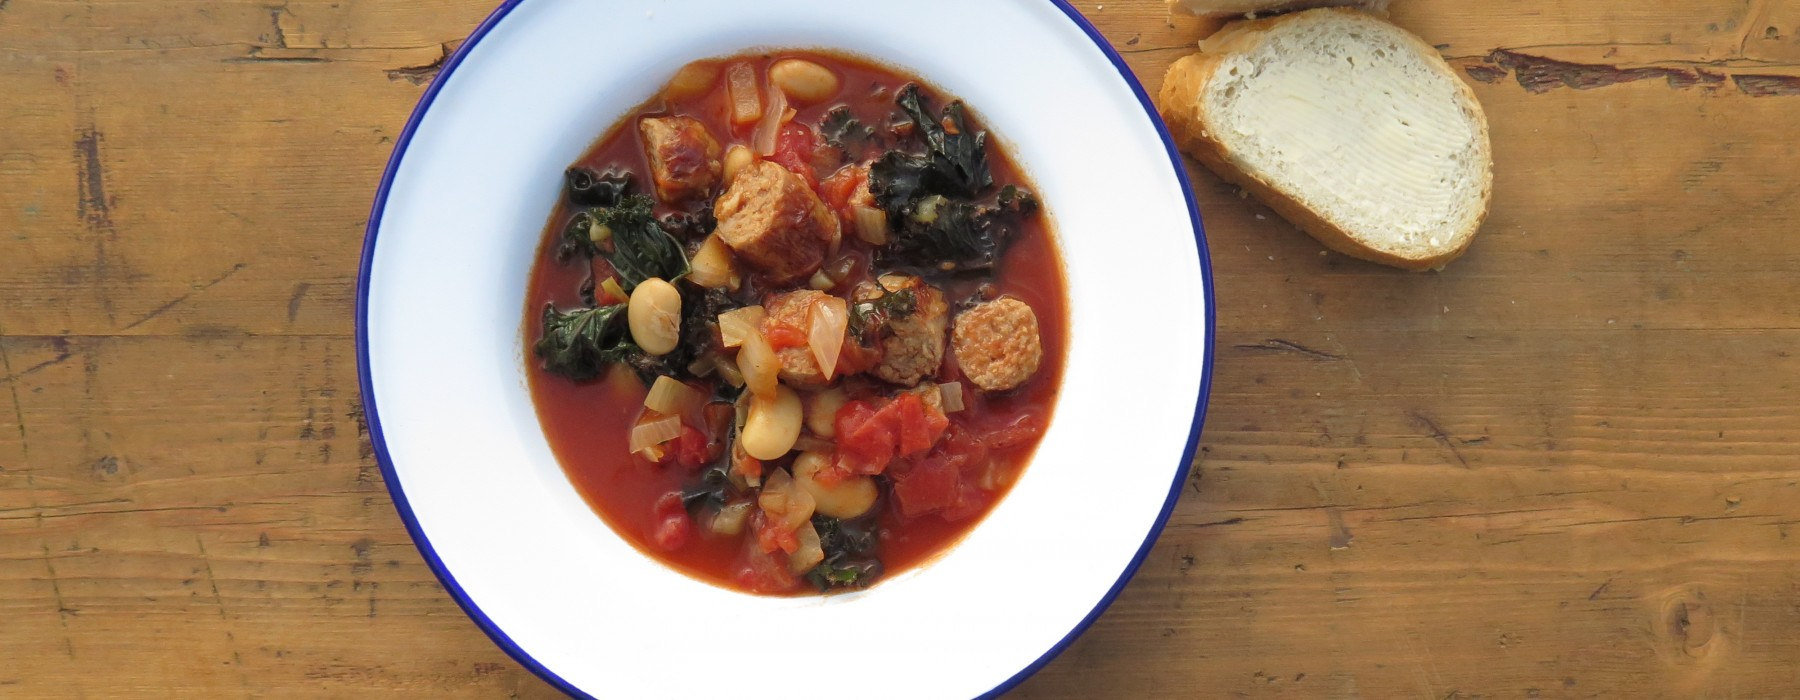 Sausage, Butterbean and Kale Casserole